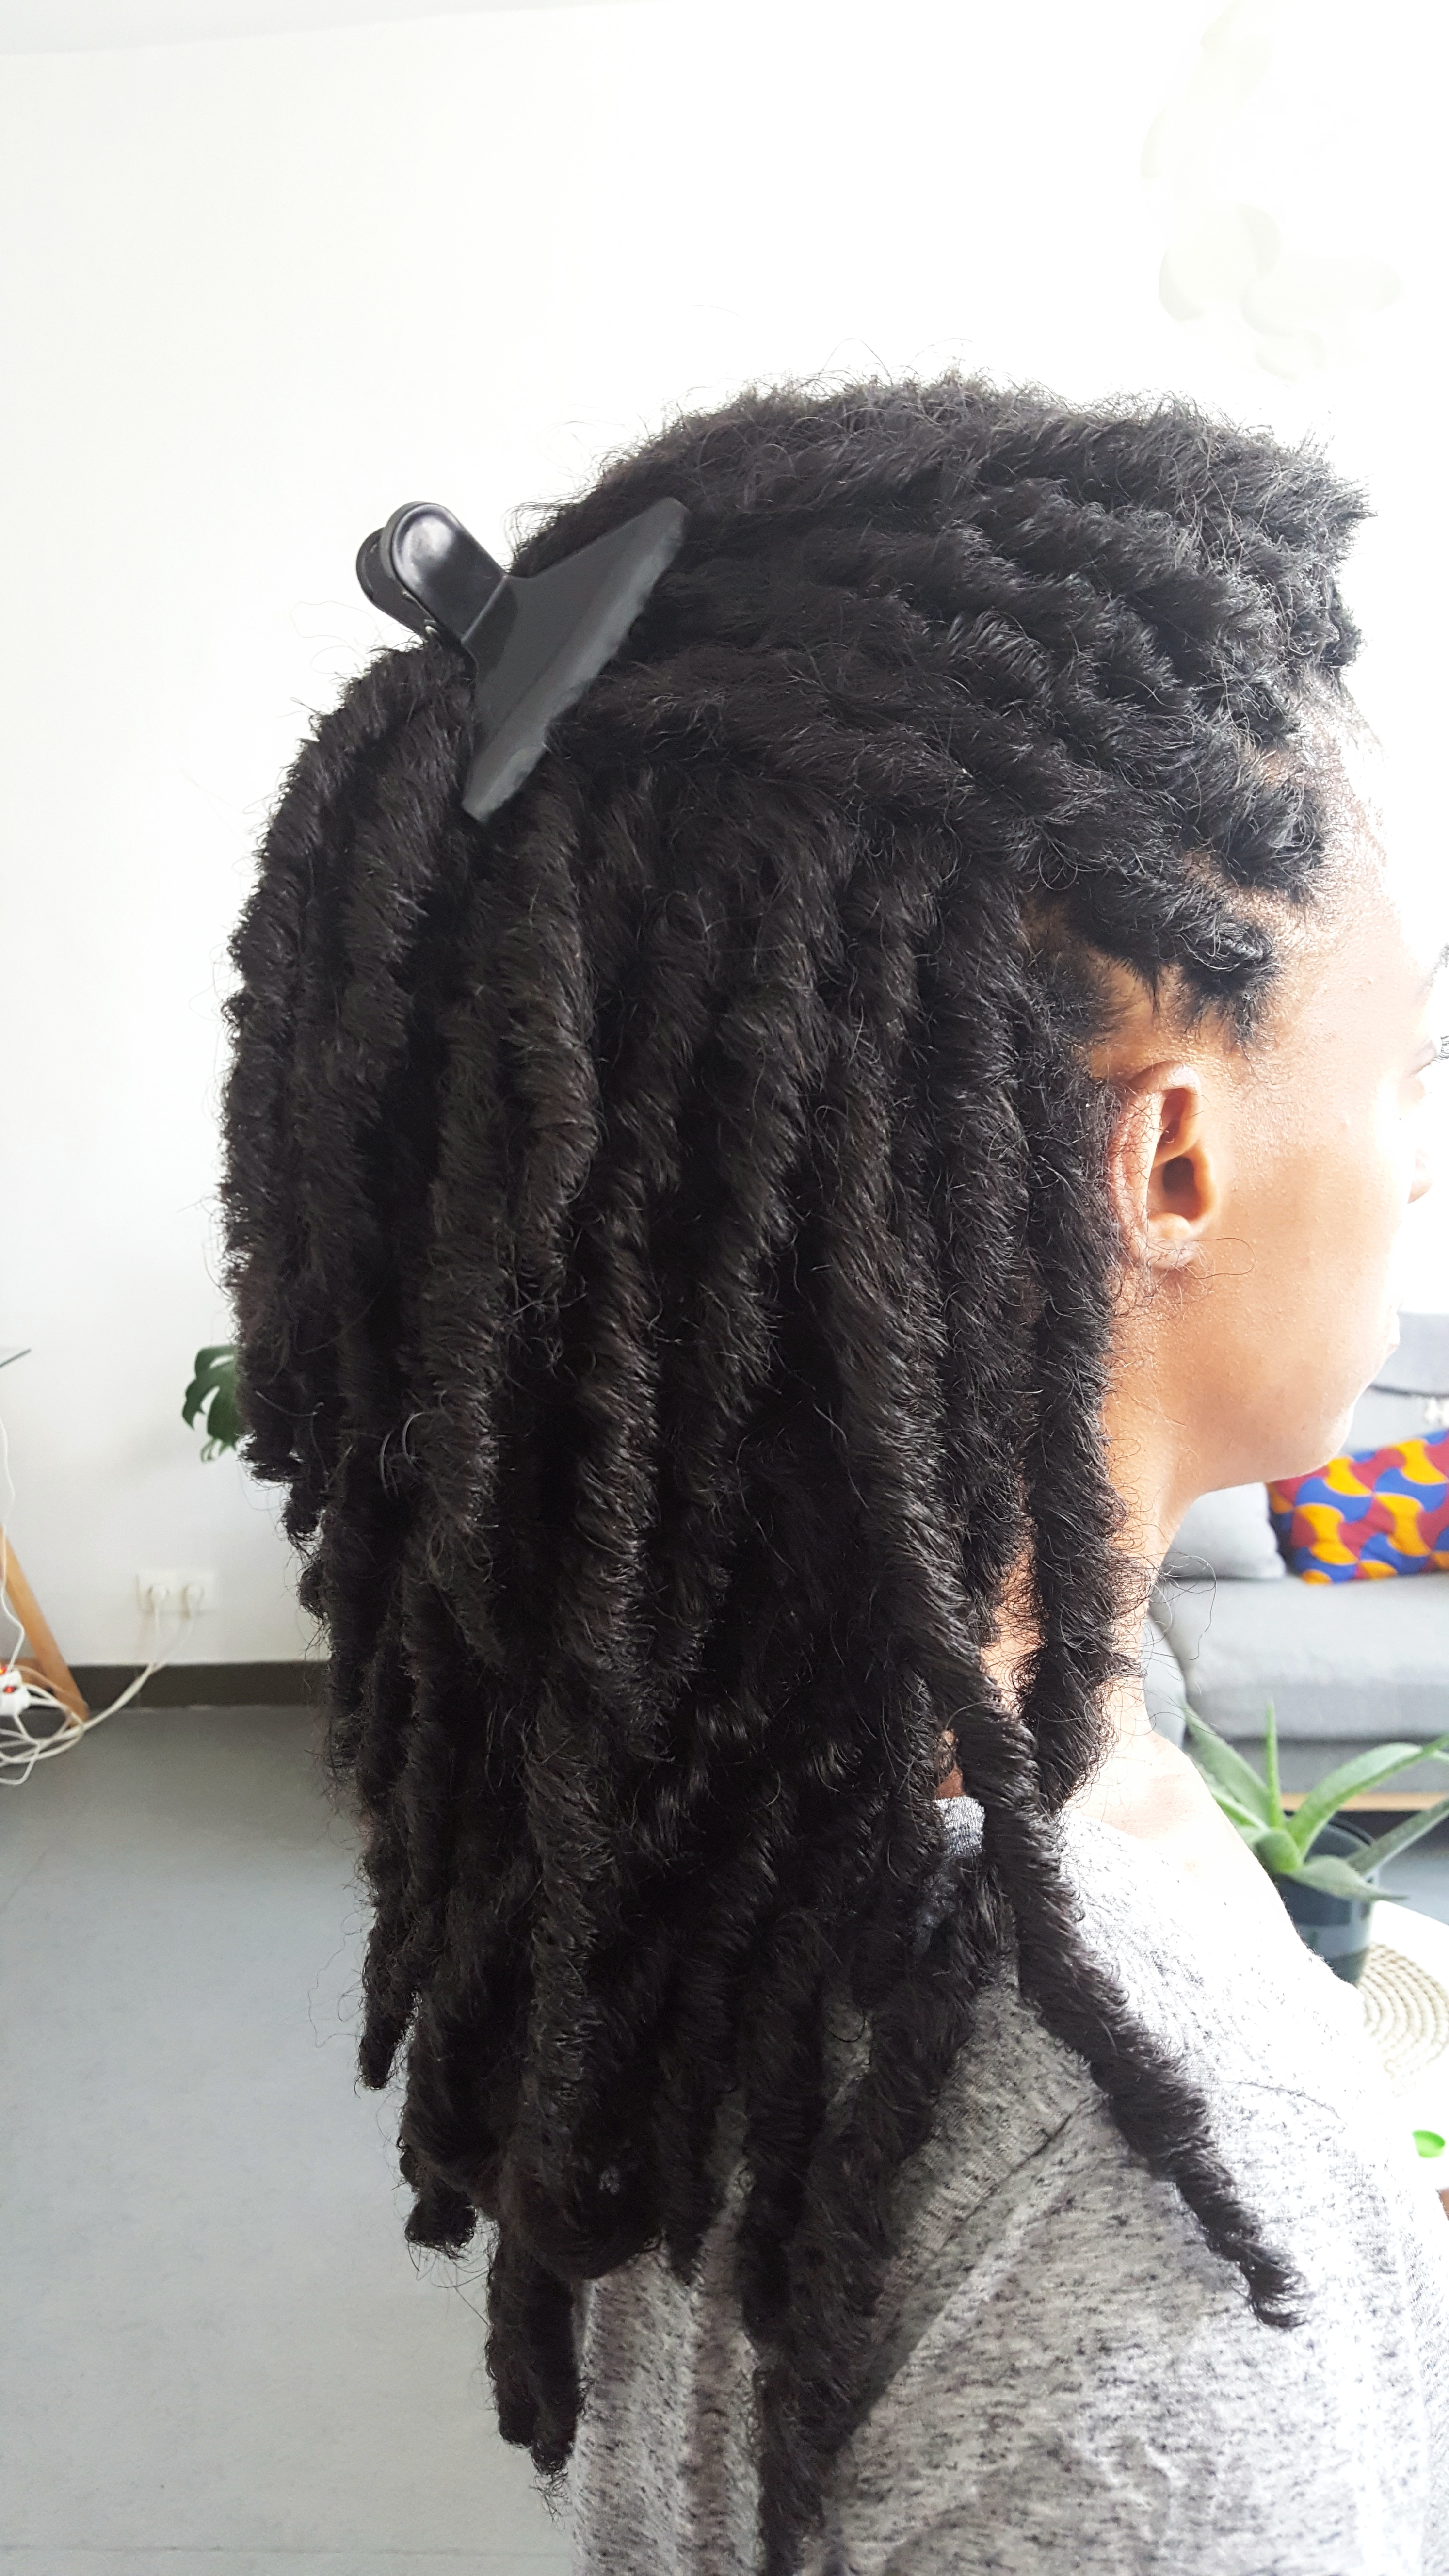 salon de coiffure afro tresse tresses box braids crochet braids vanilles tissages paris 75 77 78 91 92 93 94 95 BLAVUAUL